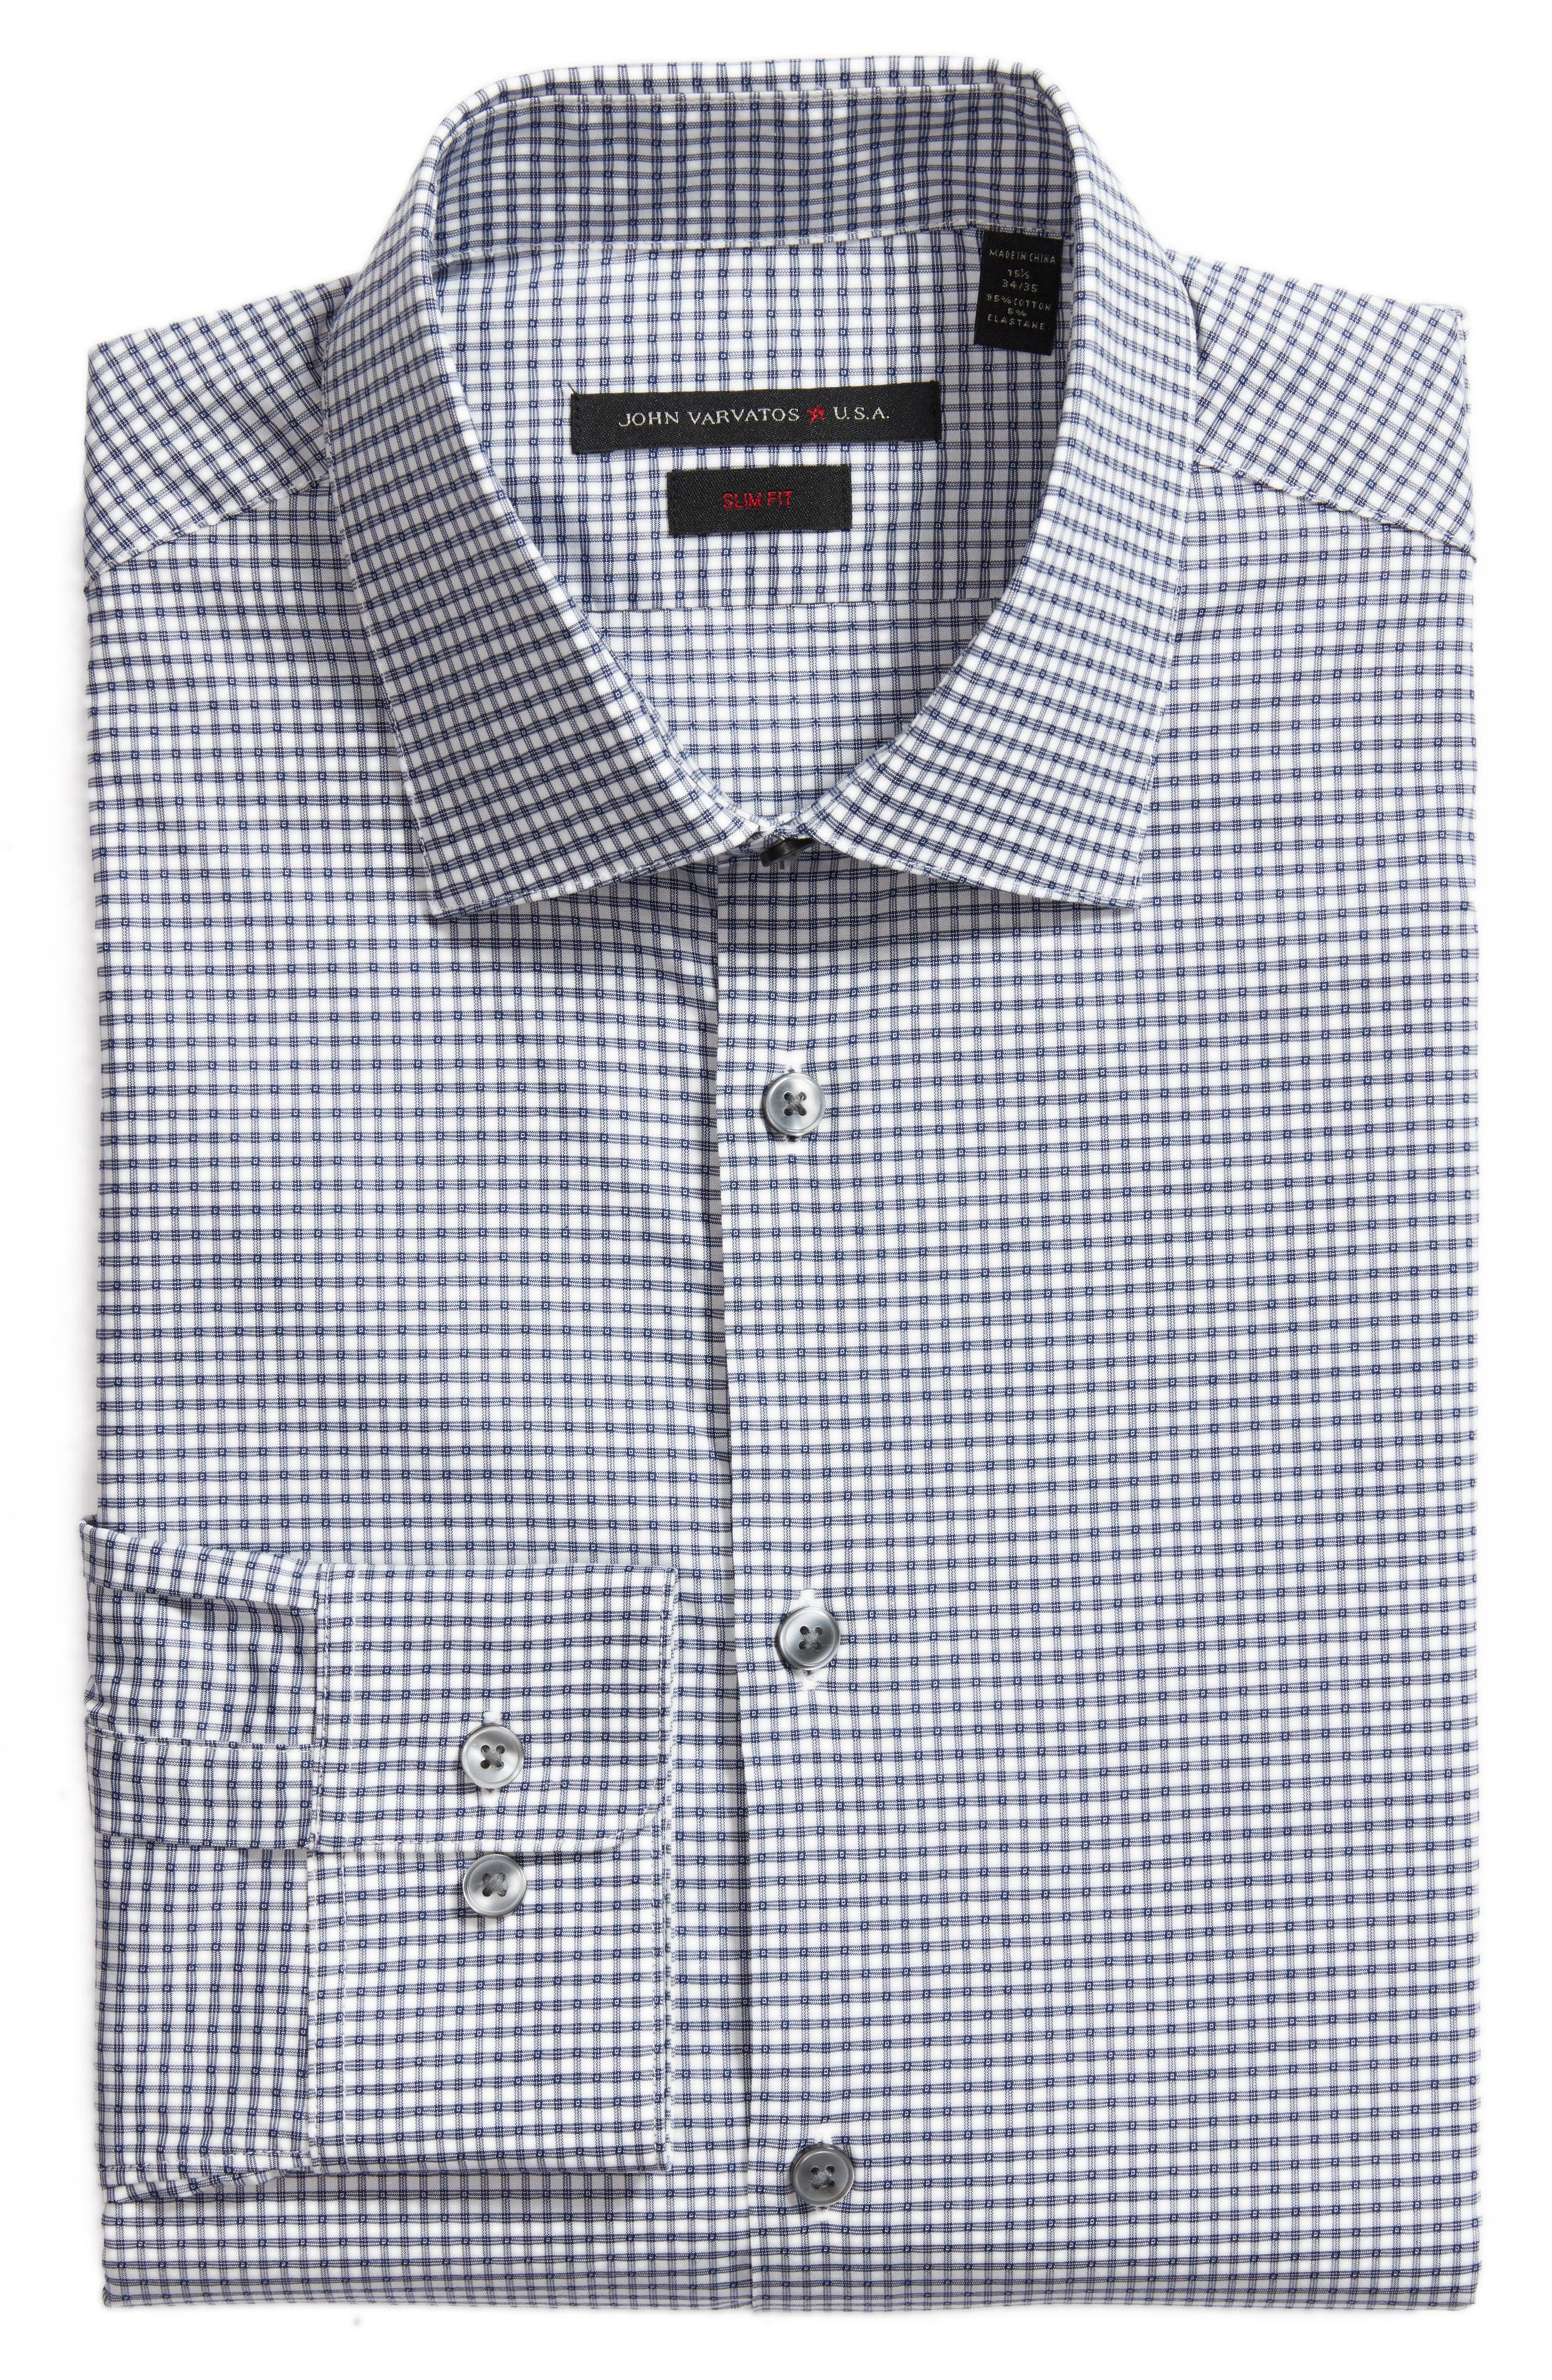 Slim Fit Stretch Check Dress Shirt,                             Alternate thumbnail 5, color,                             410